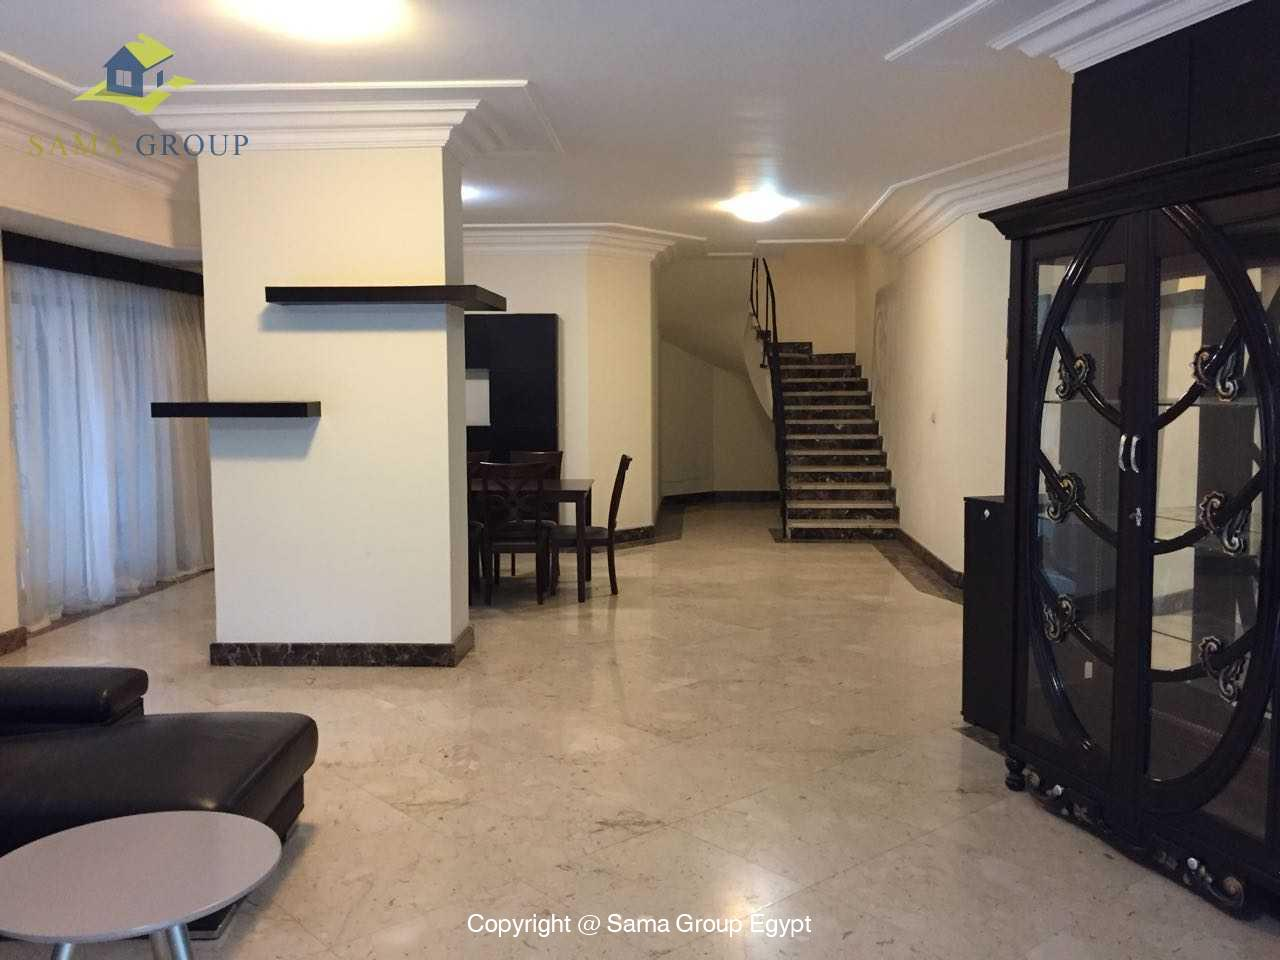 Ground Floor Duplex For Rent,Modern Furnished,Ground Floor - duplex NO #6